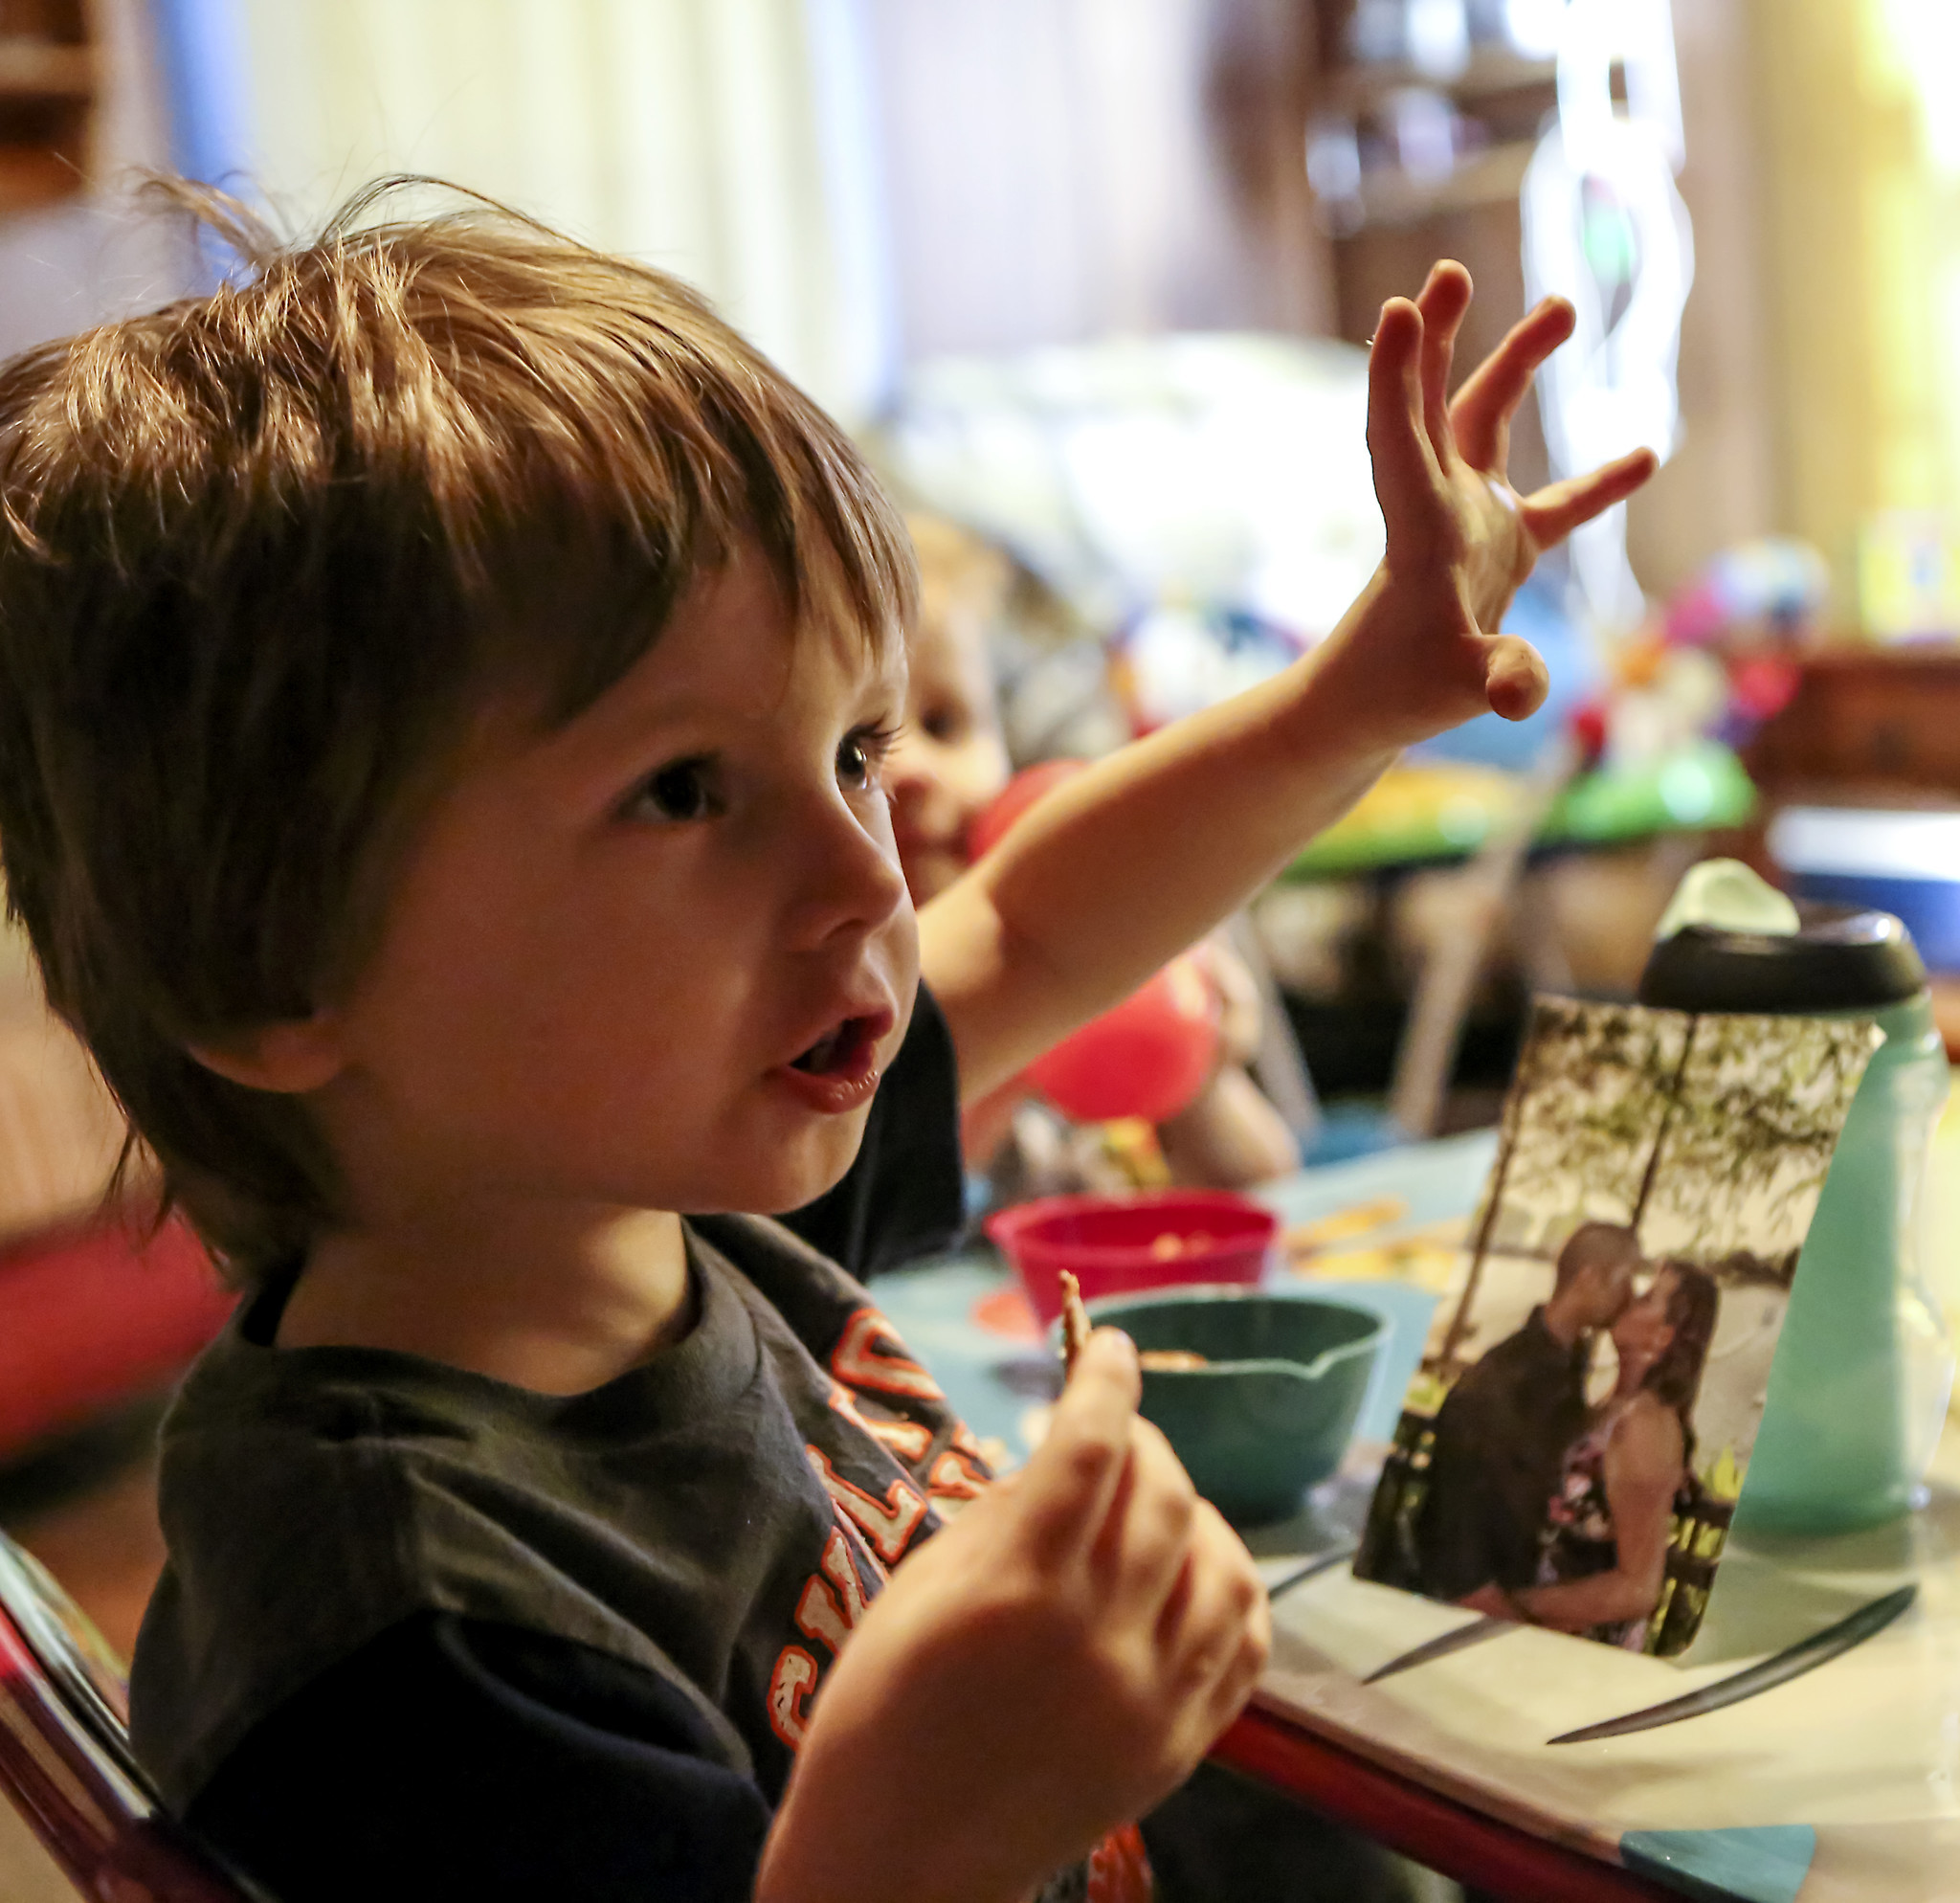 Joey Kelsey, 5, eats a snack after he rests a photo of his parents against his cup.